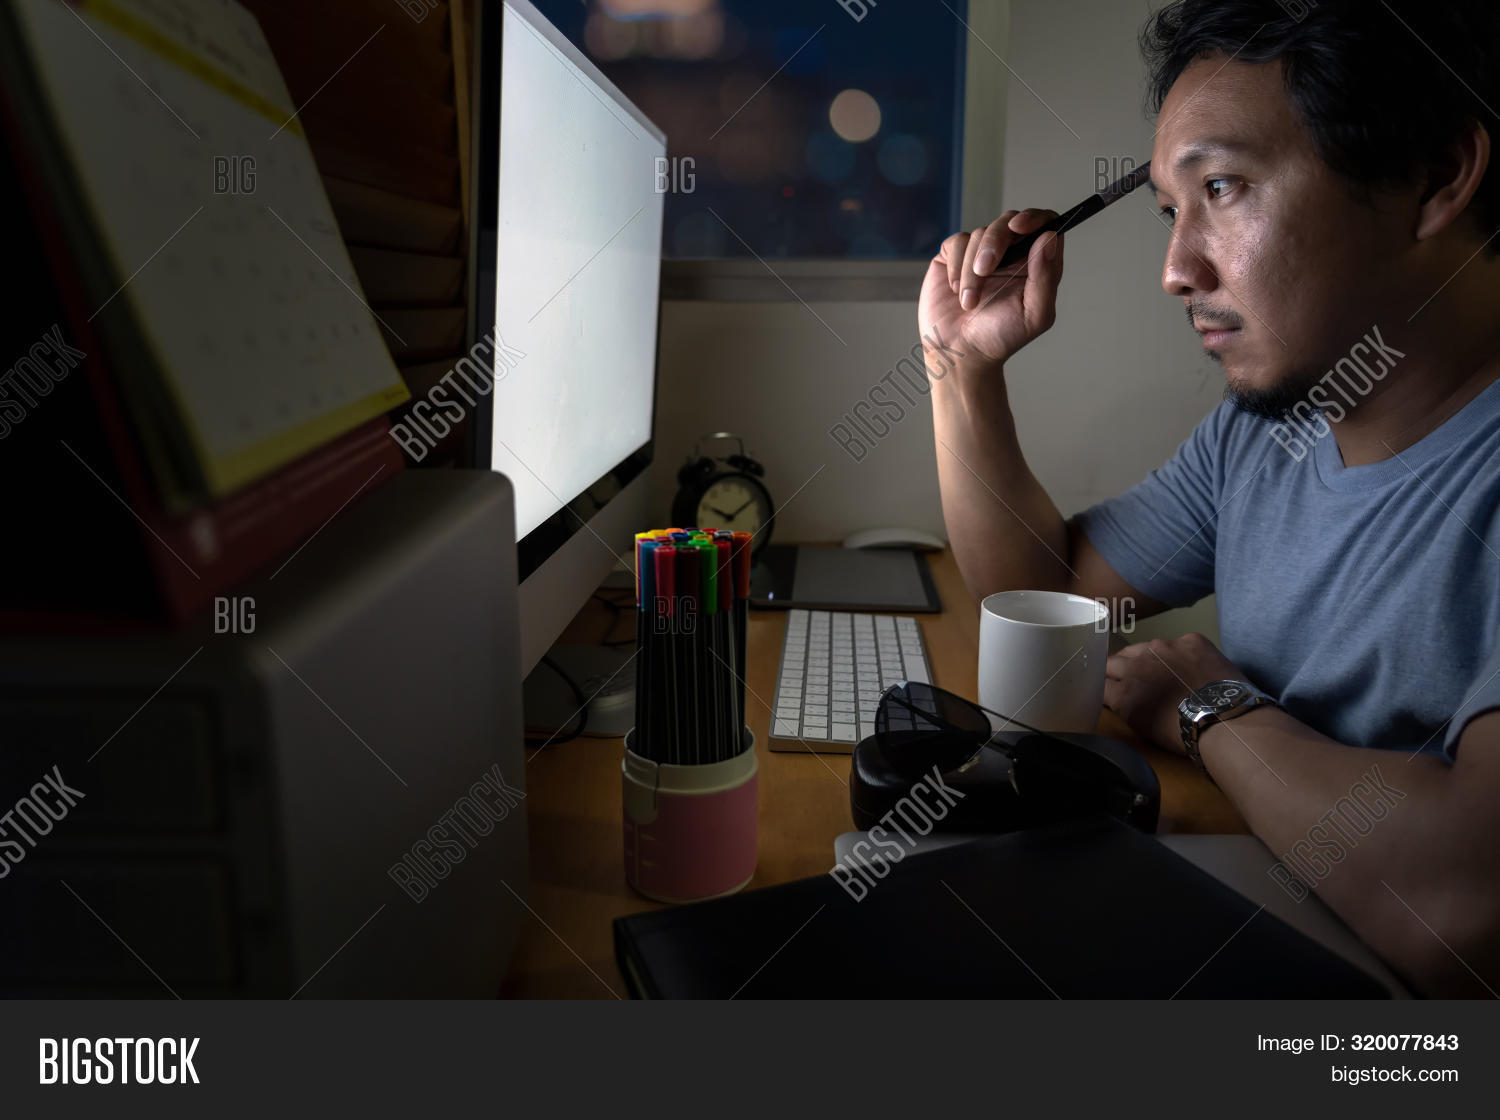 agency,alone,asia,asian,business,businessman,busy,caucasian,coffee,computer,concentrating,creative,deadline,desk,determined,difficult,employment,glasses,hard,job,late,looking,man,monitor,night,occupation,office,old,overtime,overwork,people,person,portrait,professional,screen,senior,sitting,technology,thinking,thoughtful,times,tired,trouble,typing,work,worker,working,workplace,worried,young